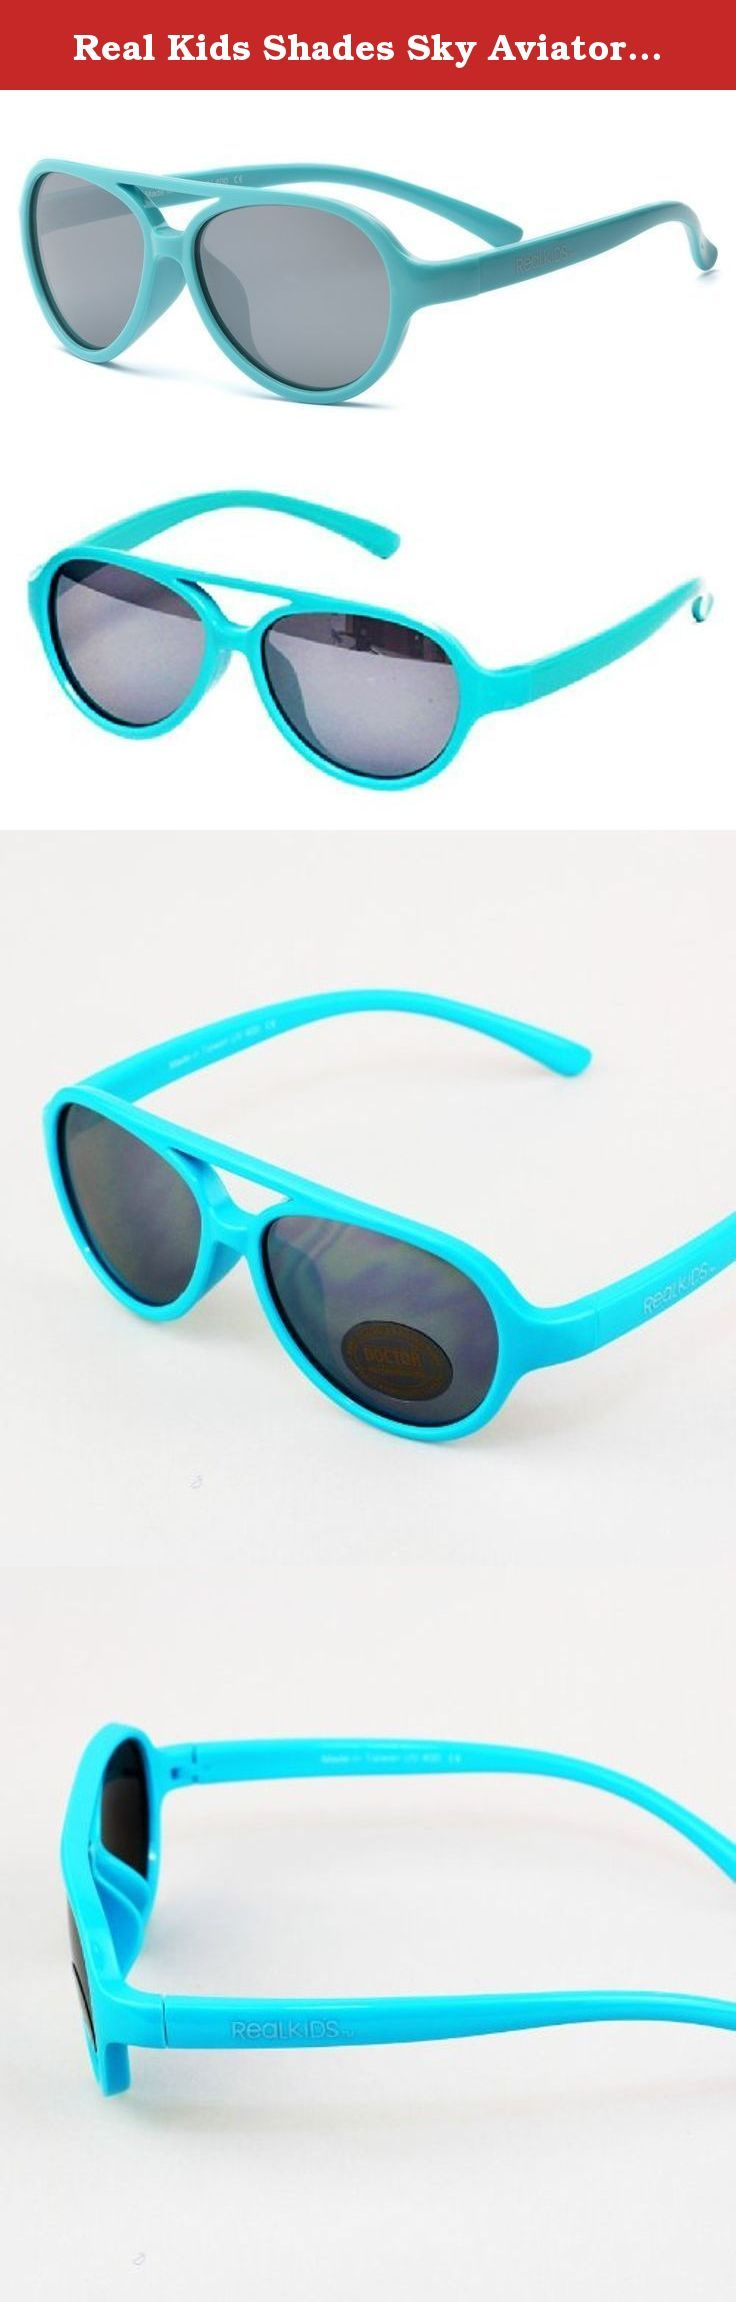 Real Kids Shades Sky Aviator Sunglasses for Kids, Toddler - Flexfit Frames - Satisfaction Guaranteed Aqua Aviator Flex Fit with PC Silver Mirror Lens 4+. Real Kids Shades Sky Aviator Sunglasses for Kids, Toddler - Flexfit Frames - Satisfaction Guaranteed Aqua Aviator Flex Fit with PC Silver Mirror Lens 4+.